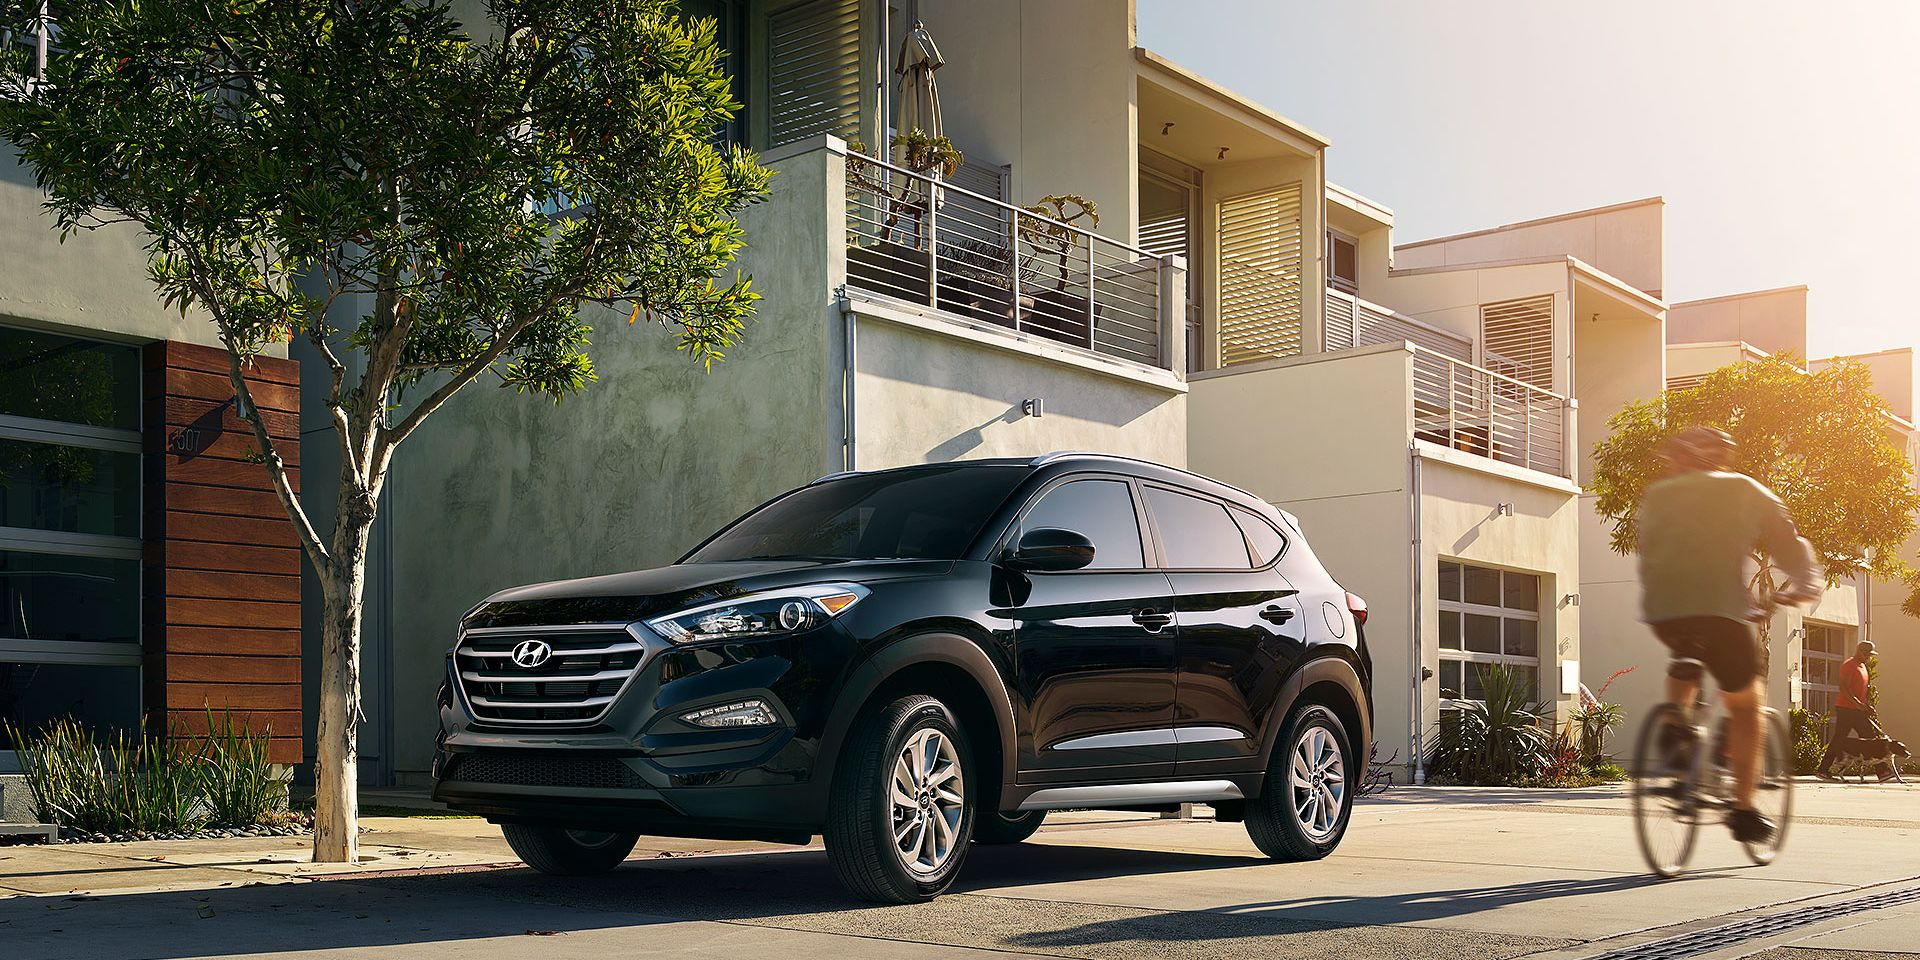 Take Home a Hyundai Today!